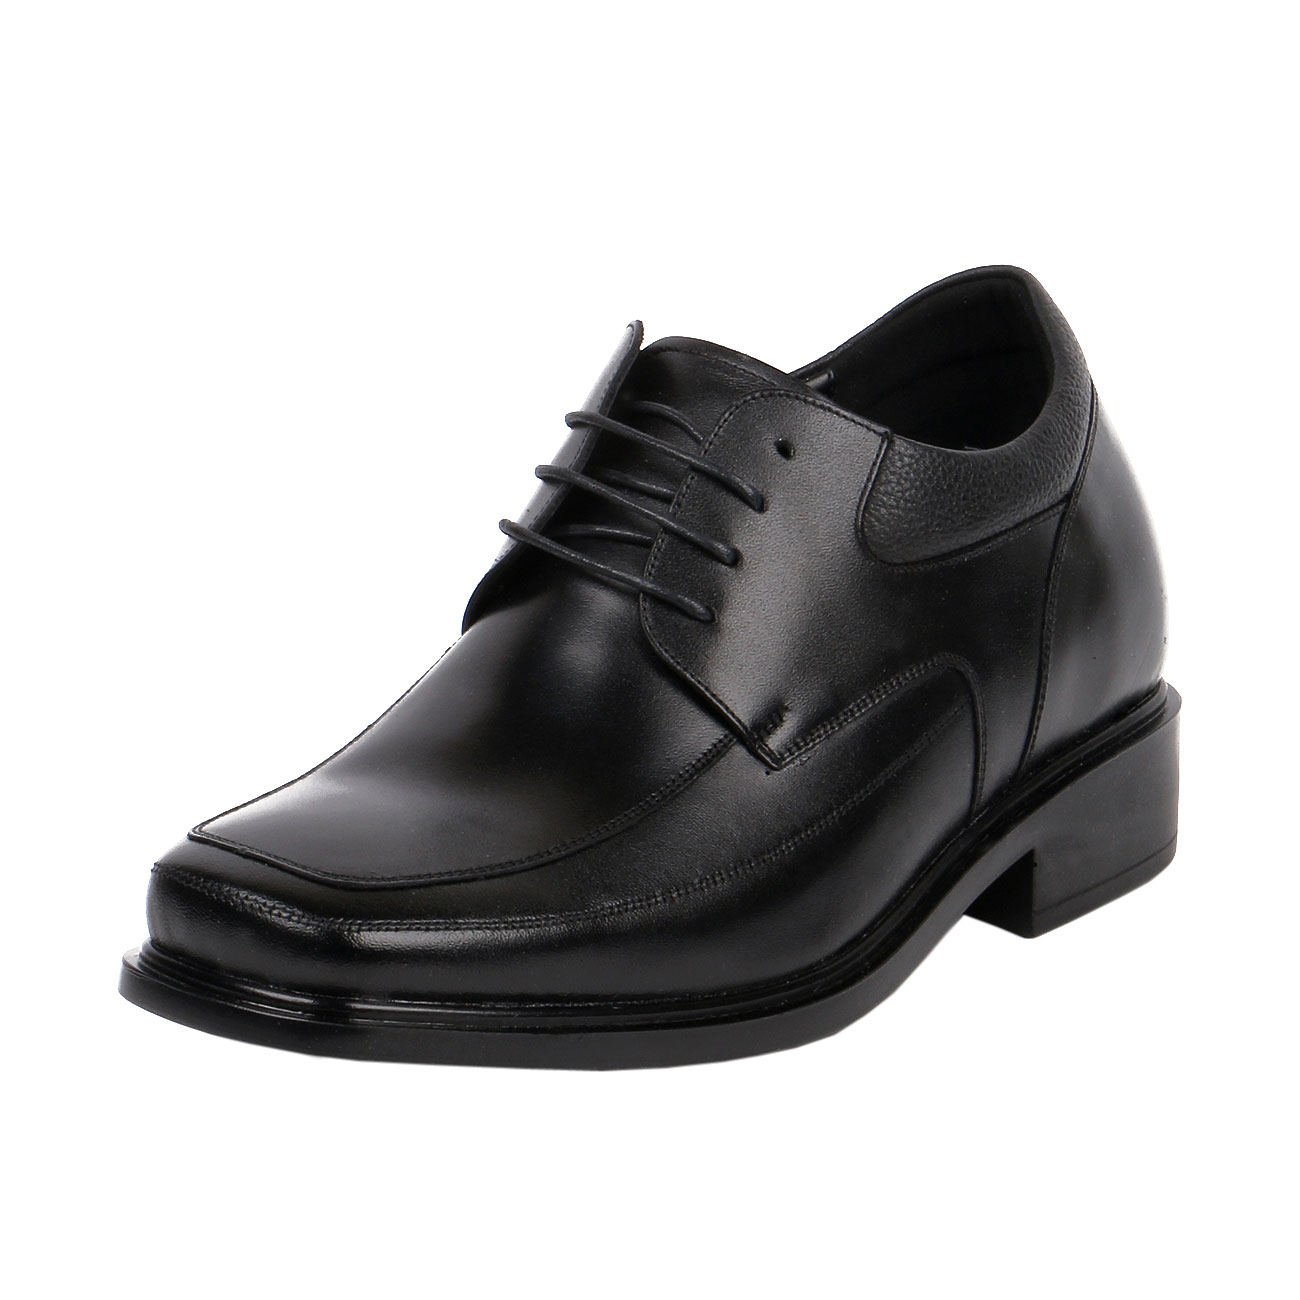 KL600, Men Black Dress Square Shoe Height lighting You for Success to the Job Interview-1